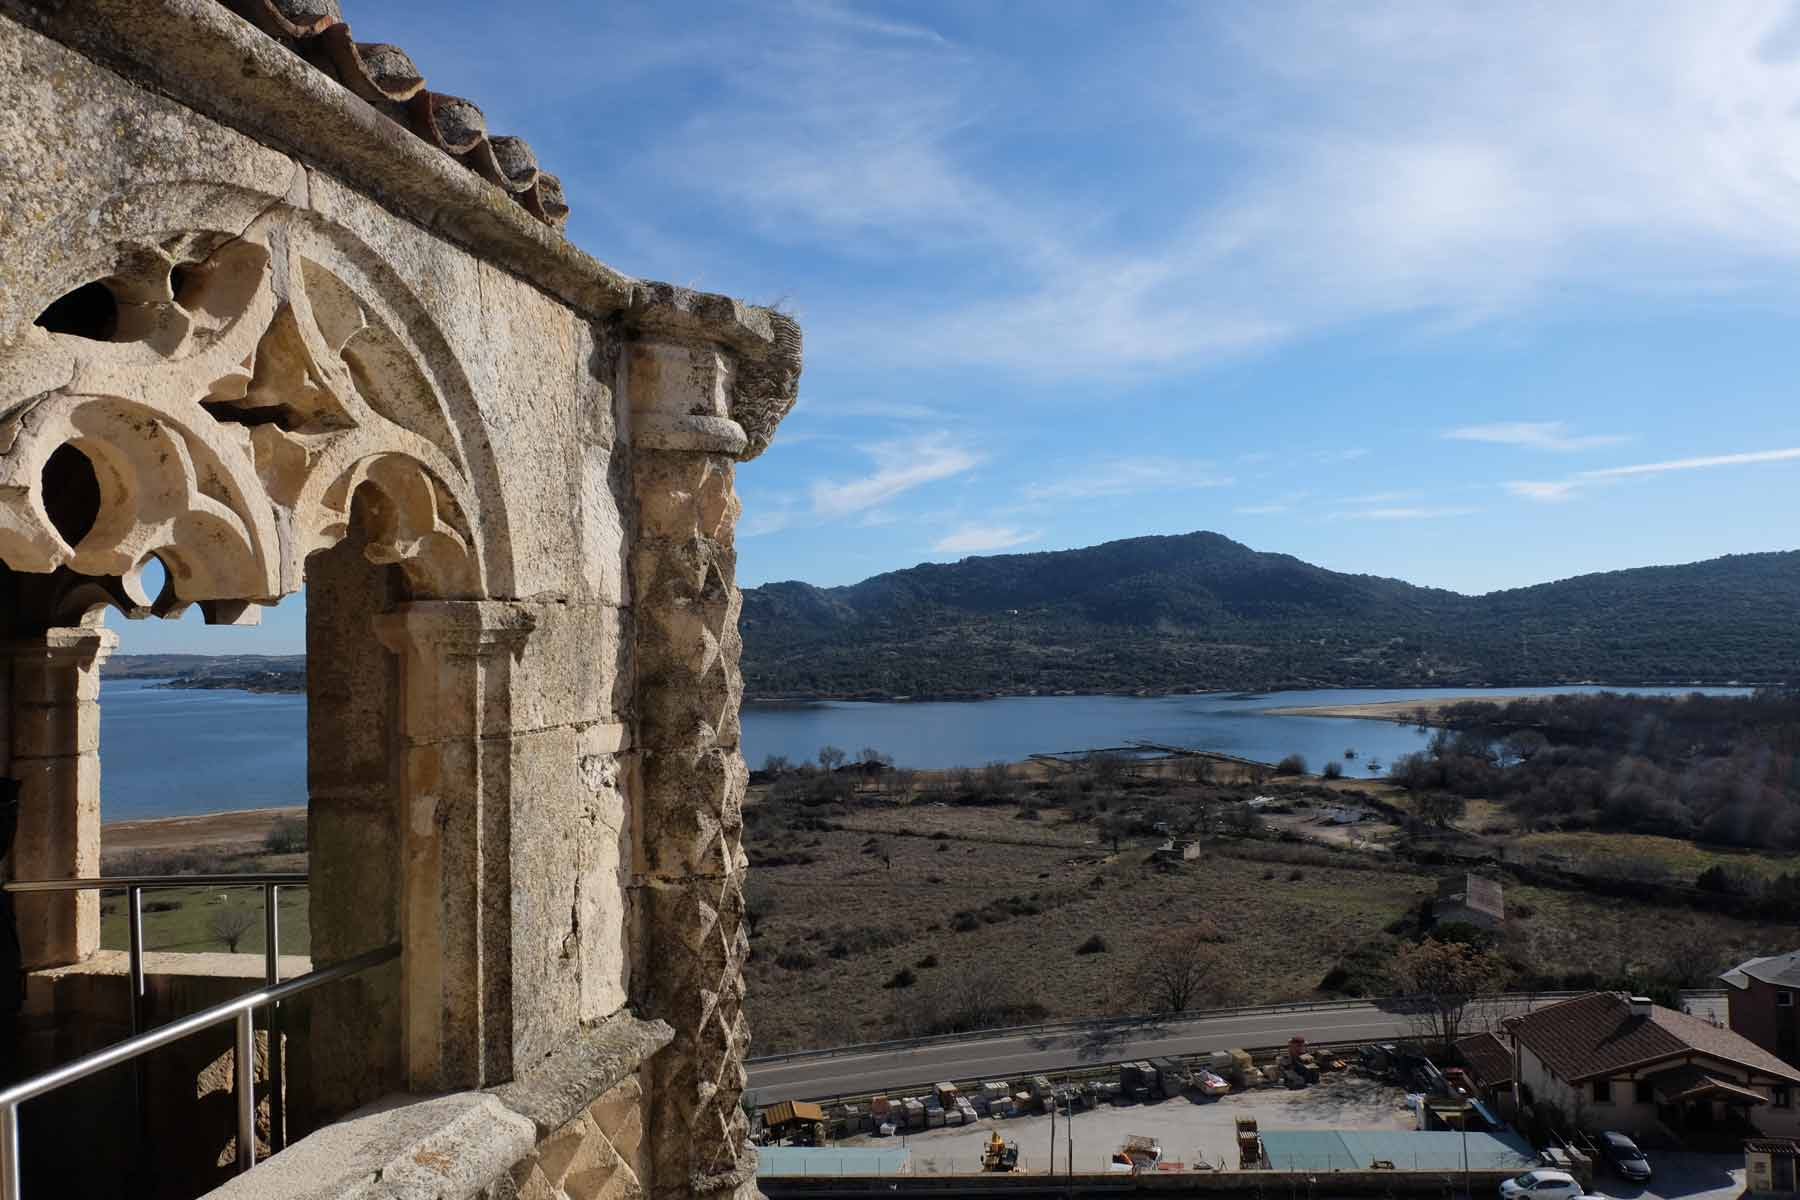 El Embalse Santillana desde el Castillo. | Santillana Reservoir view from the Castle.